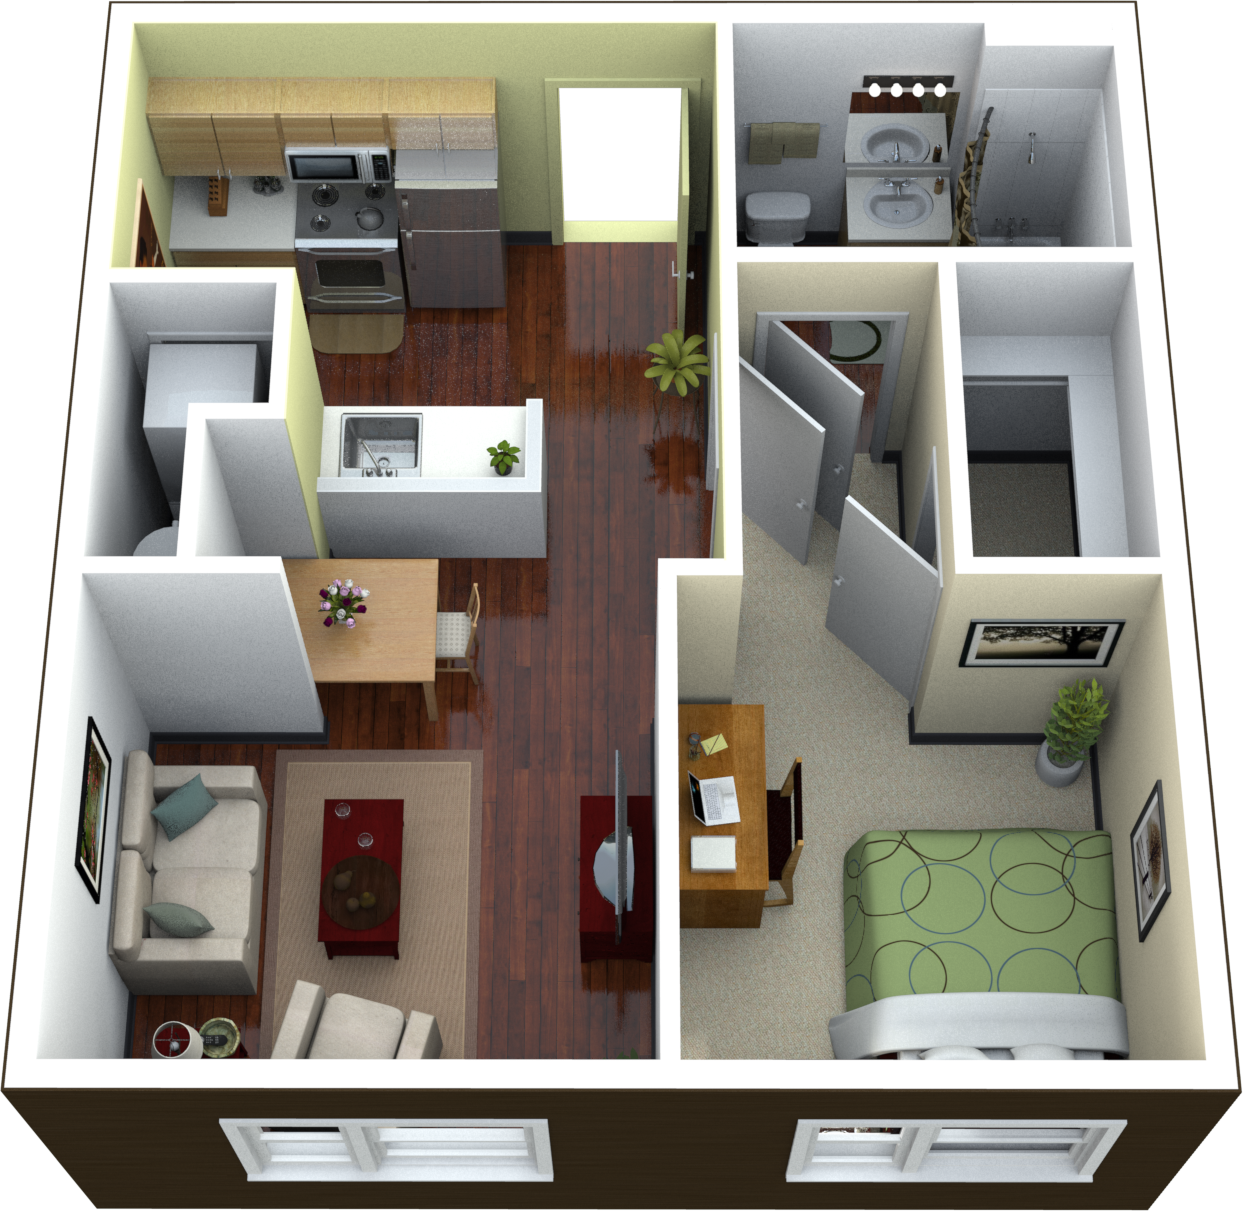 Amazing Apartment 1 Bedroom Apartments Floor Plan Minimalist Decorating For 1  Bedroom Apartment